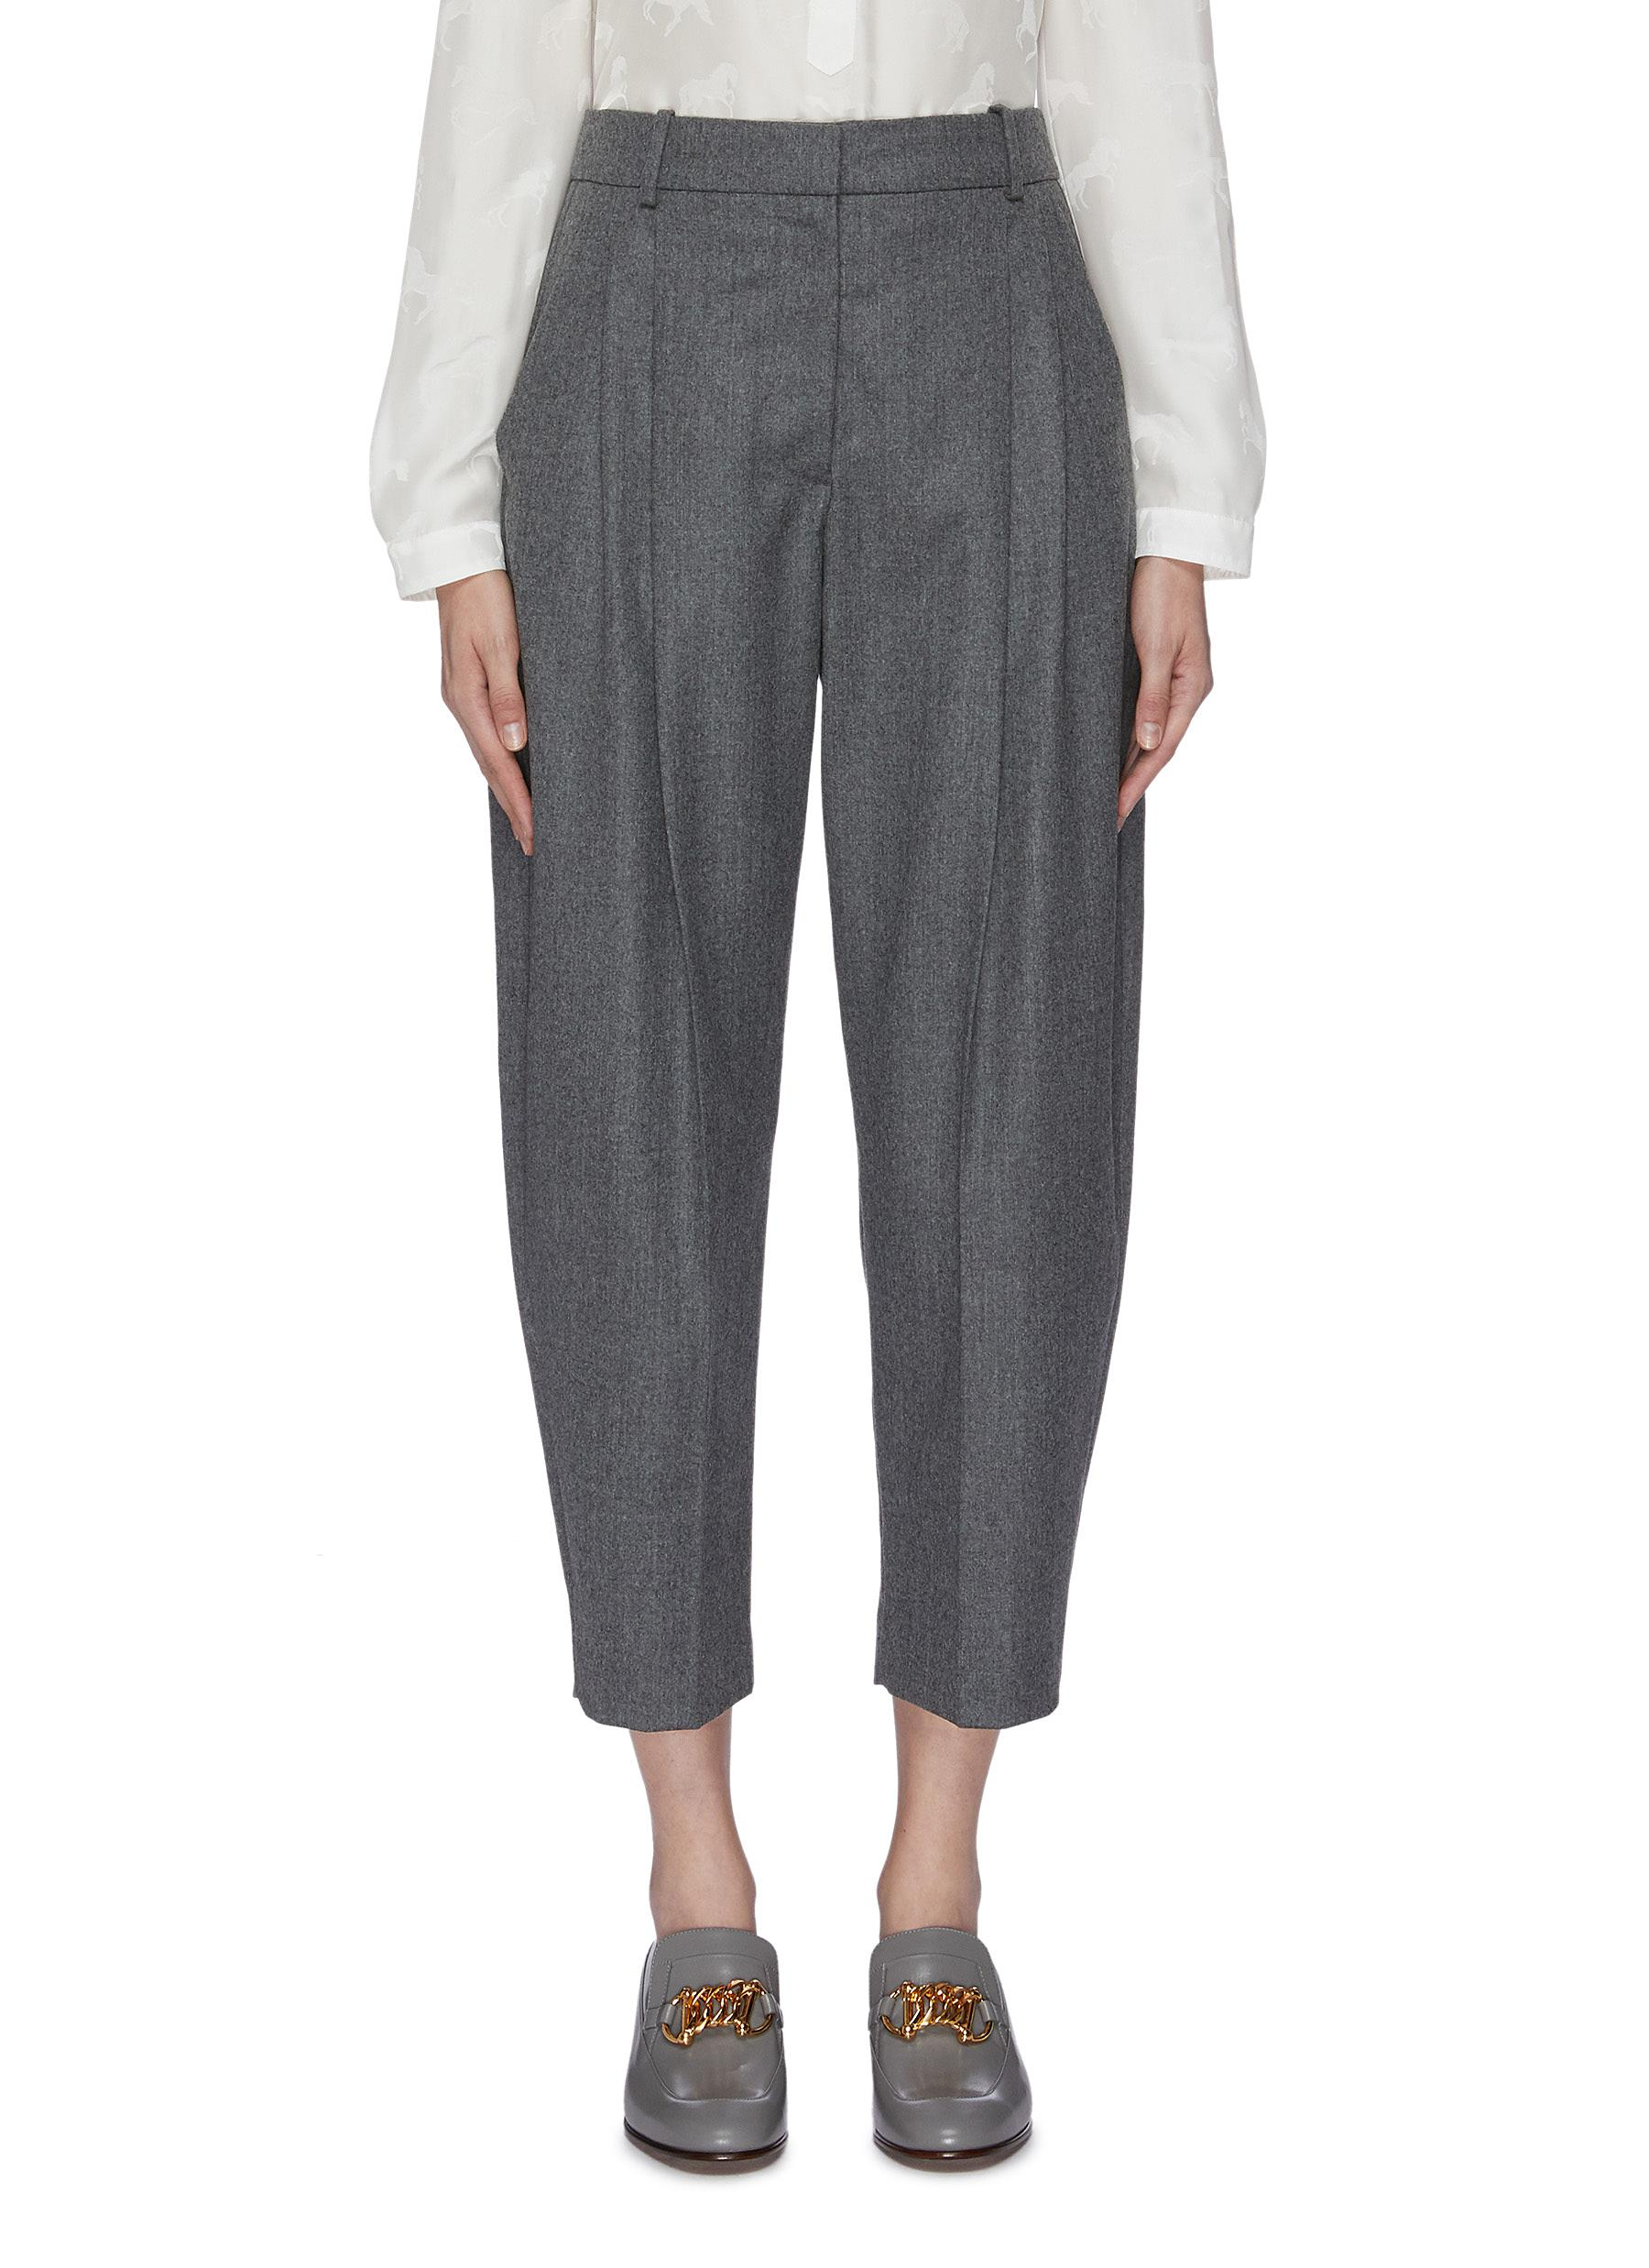 Pleated flannel pants by Stella Mccartney